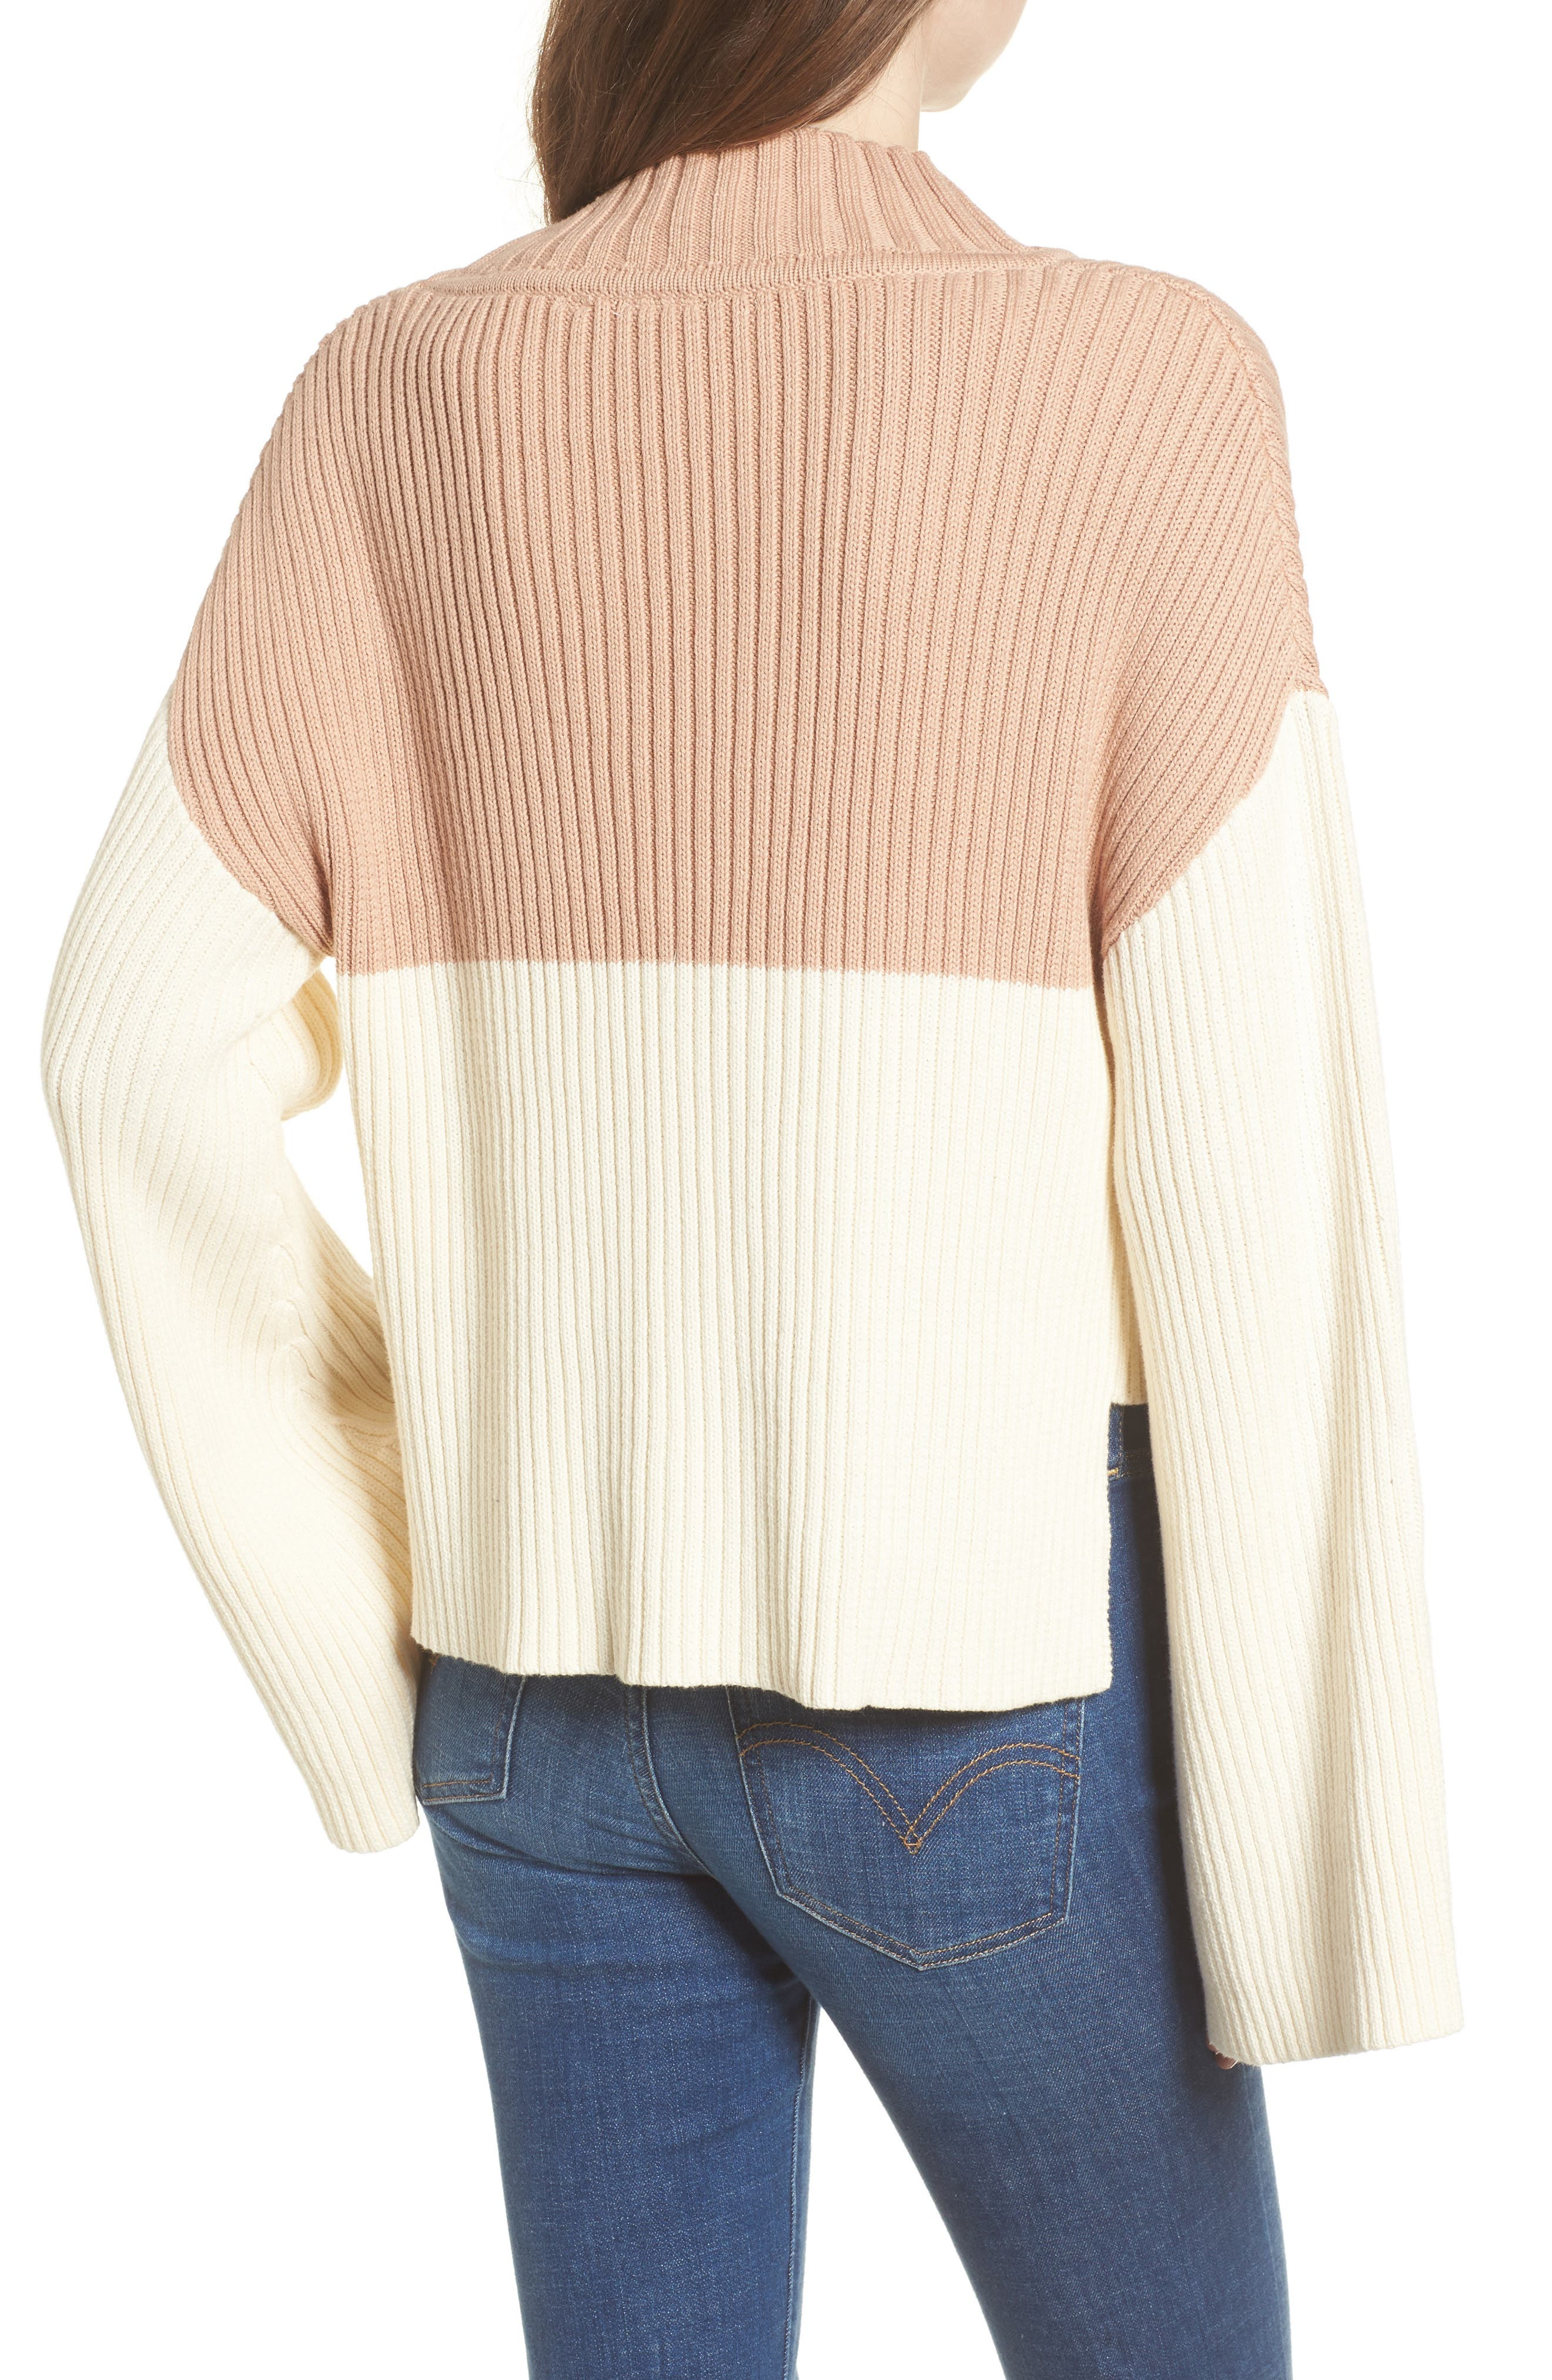 Like a Melody Colorblock Crop Sweater,                             Alternate thumbnail 2, color,                             900